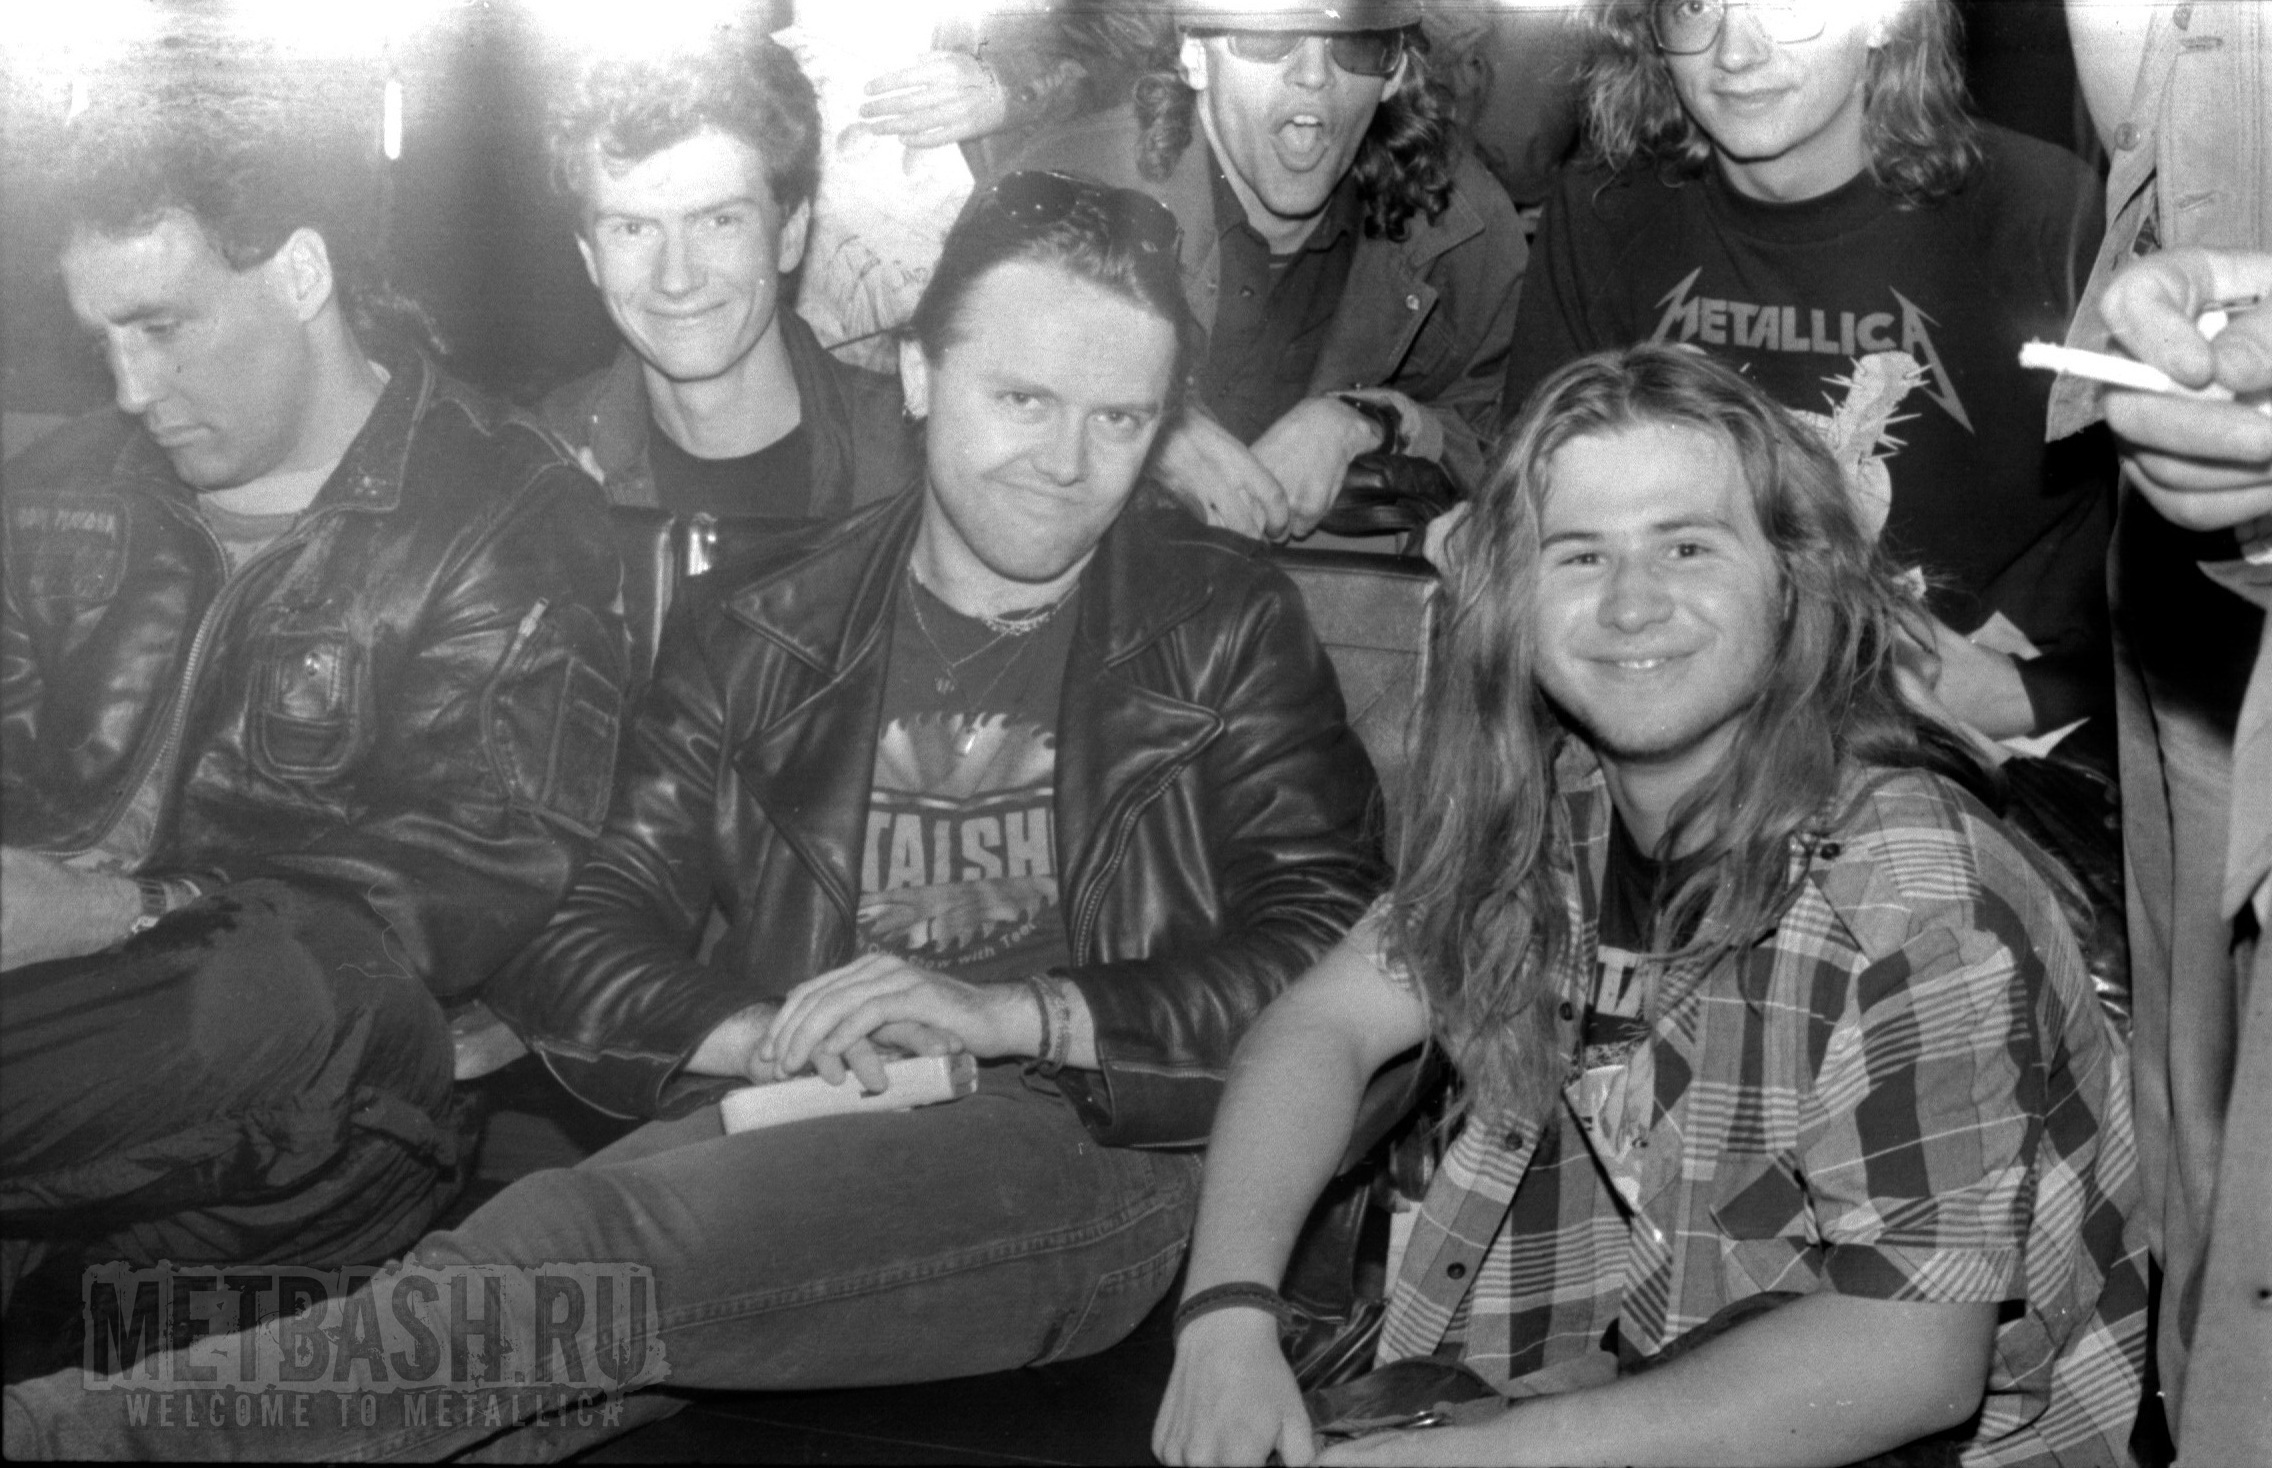 1 metallica moscow 1991 In 1991,